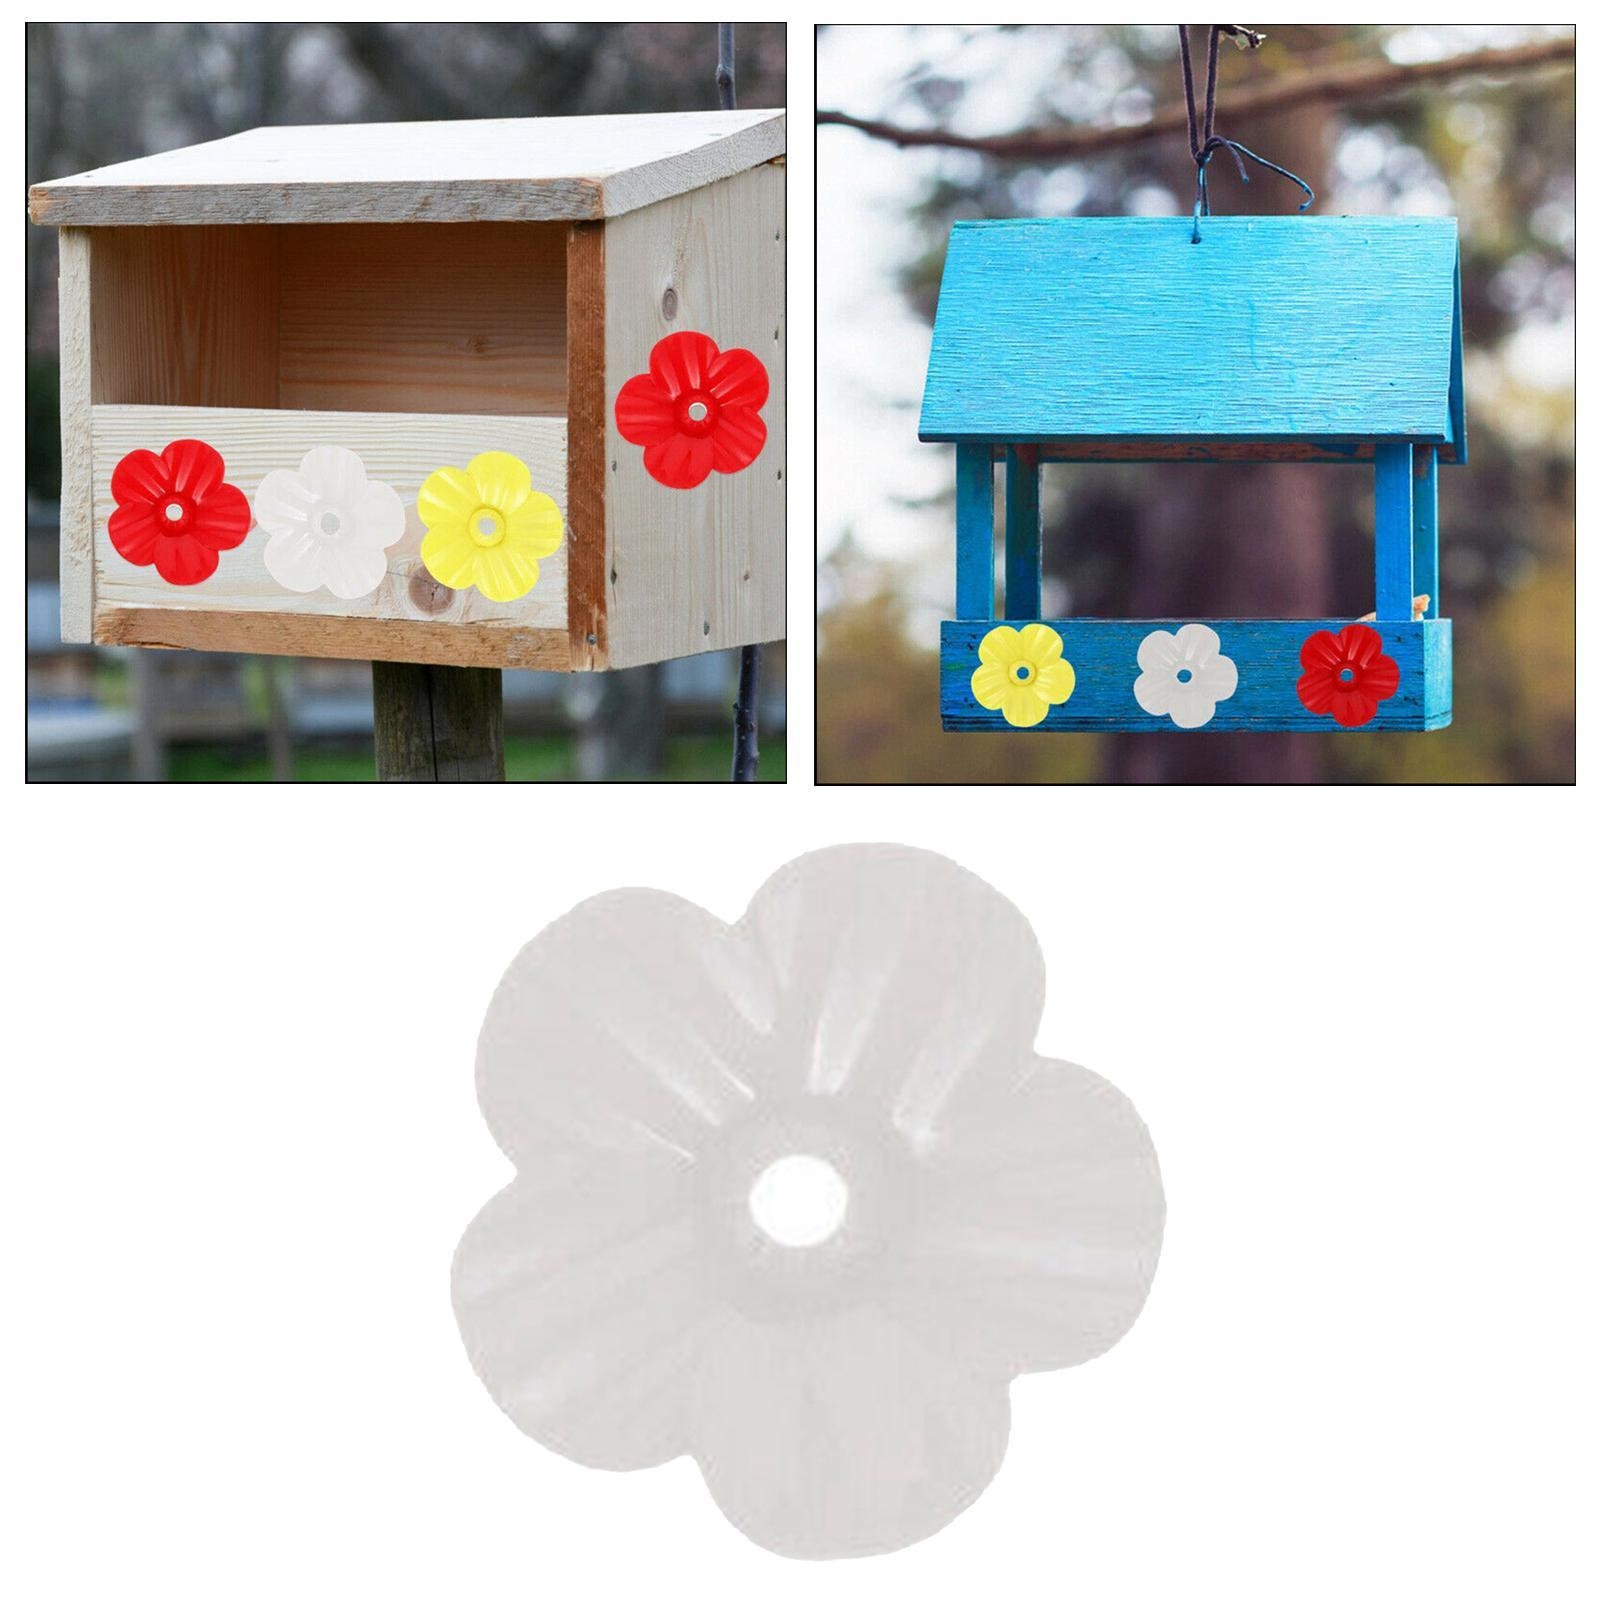 thumbnail 8 - Hanging hummingbird feeder replacement flower, feeding port, parts used supplies